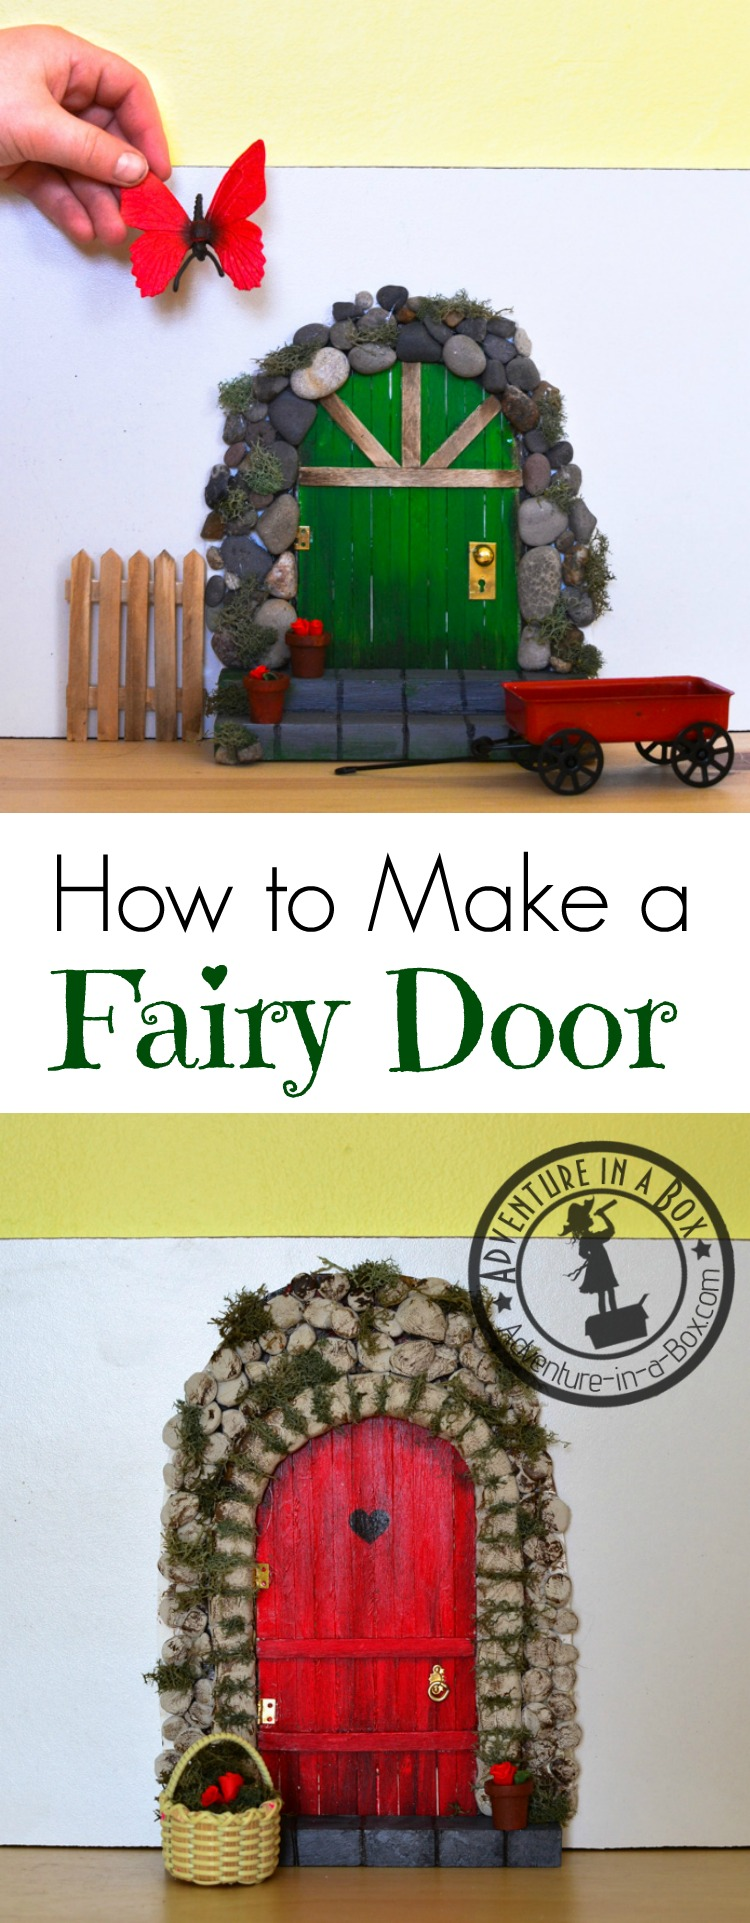 Add a little bit of whimsical magic to your playroom decor by making an indoor fairy door! All you really need for this DIY project is craft sticks, pebbles and glue.